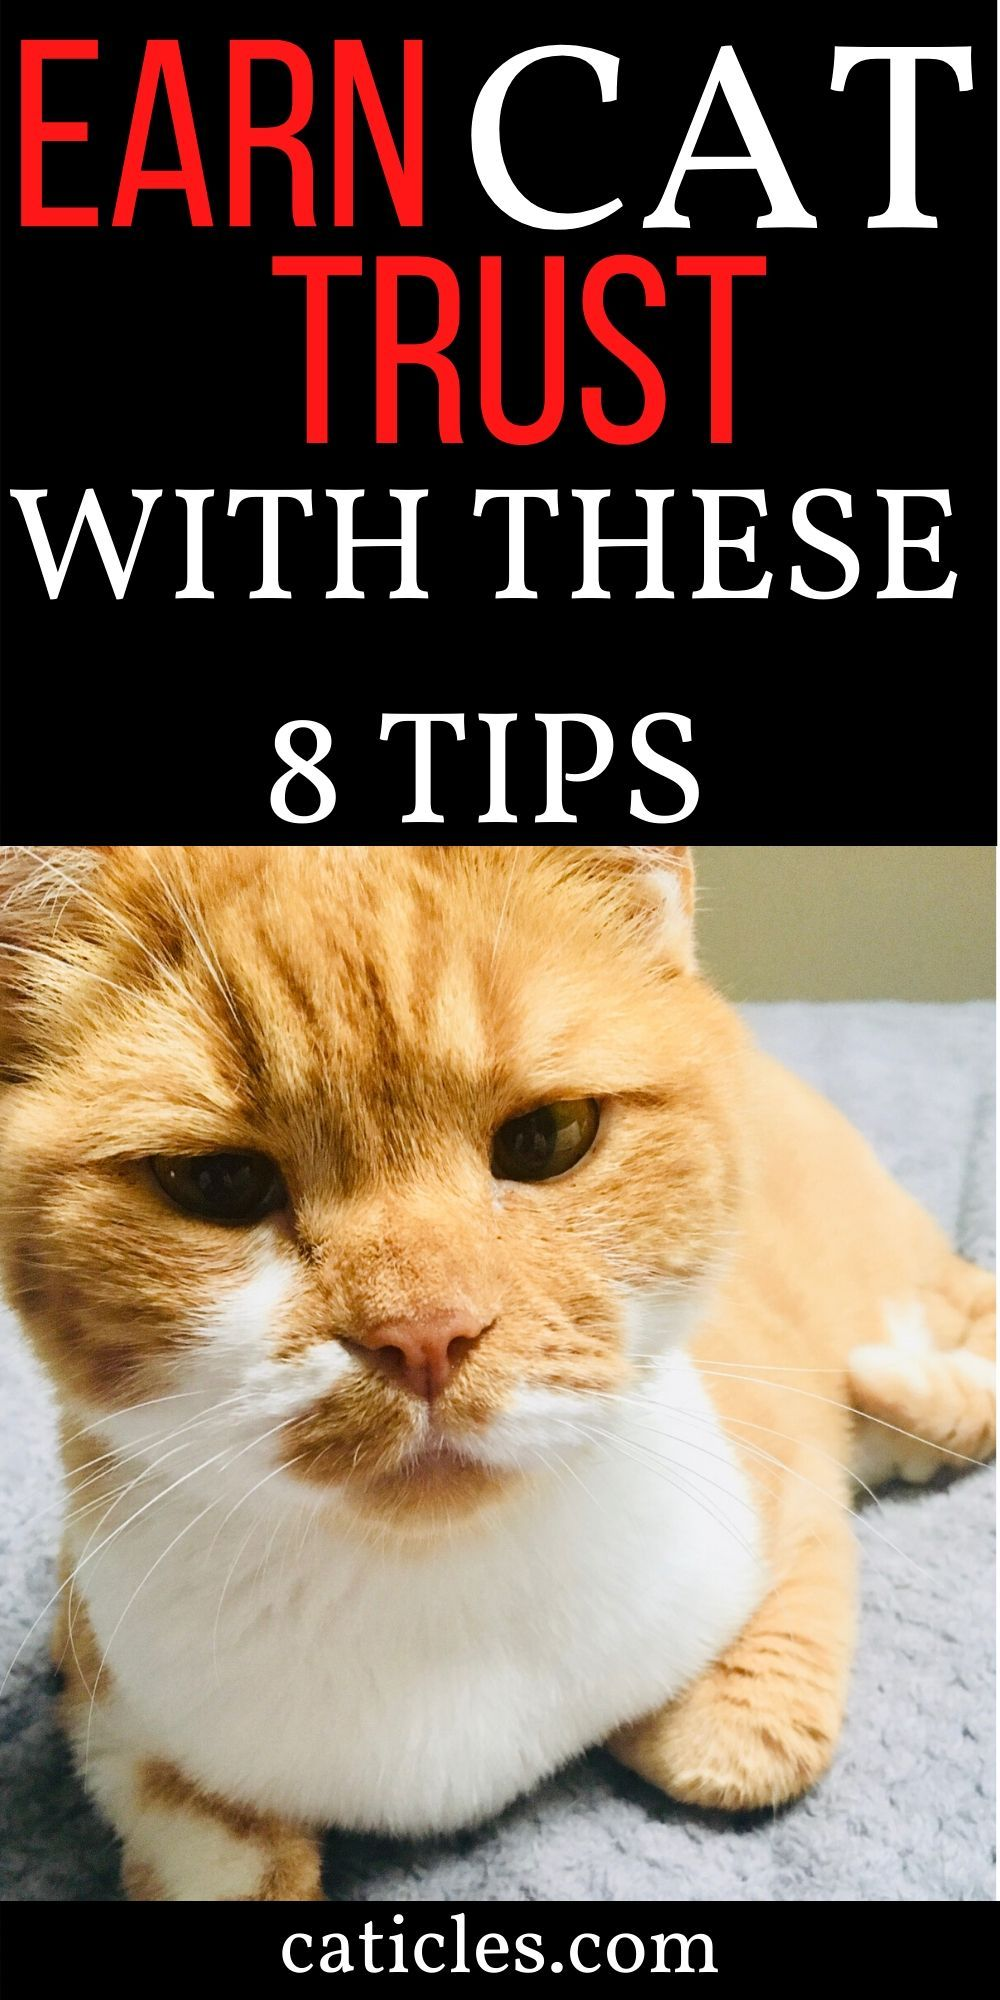 Cat Rituals That Stop Your Cat From Waking You At 3 Am Caticles In 2020 Cats Cat Language Cat Problems